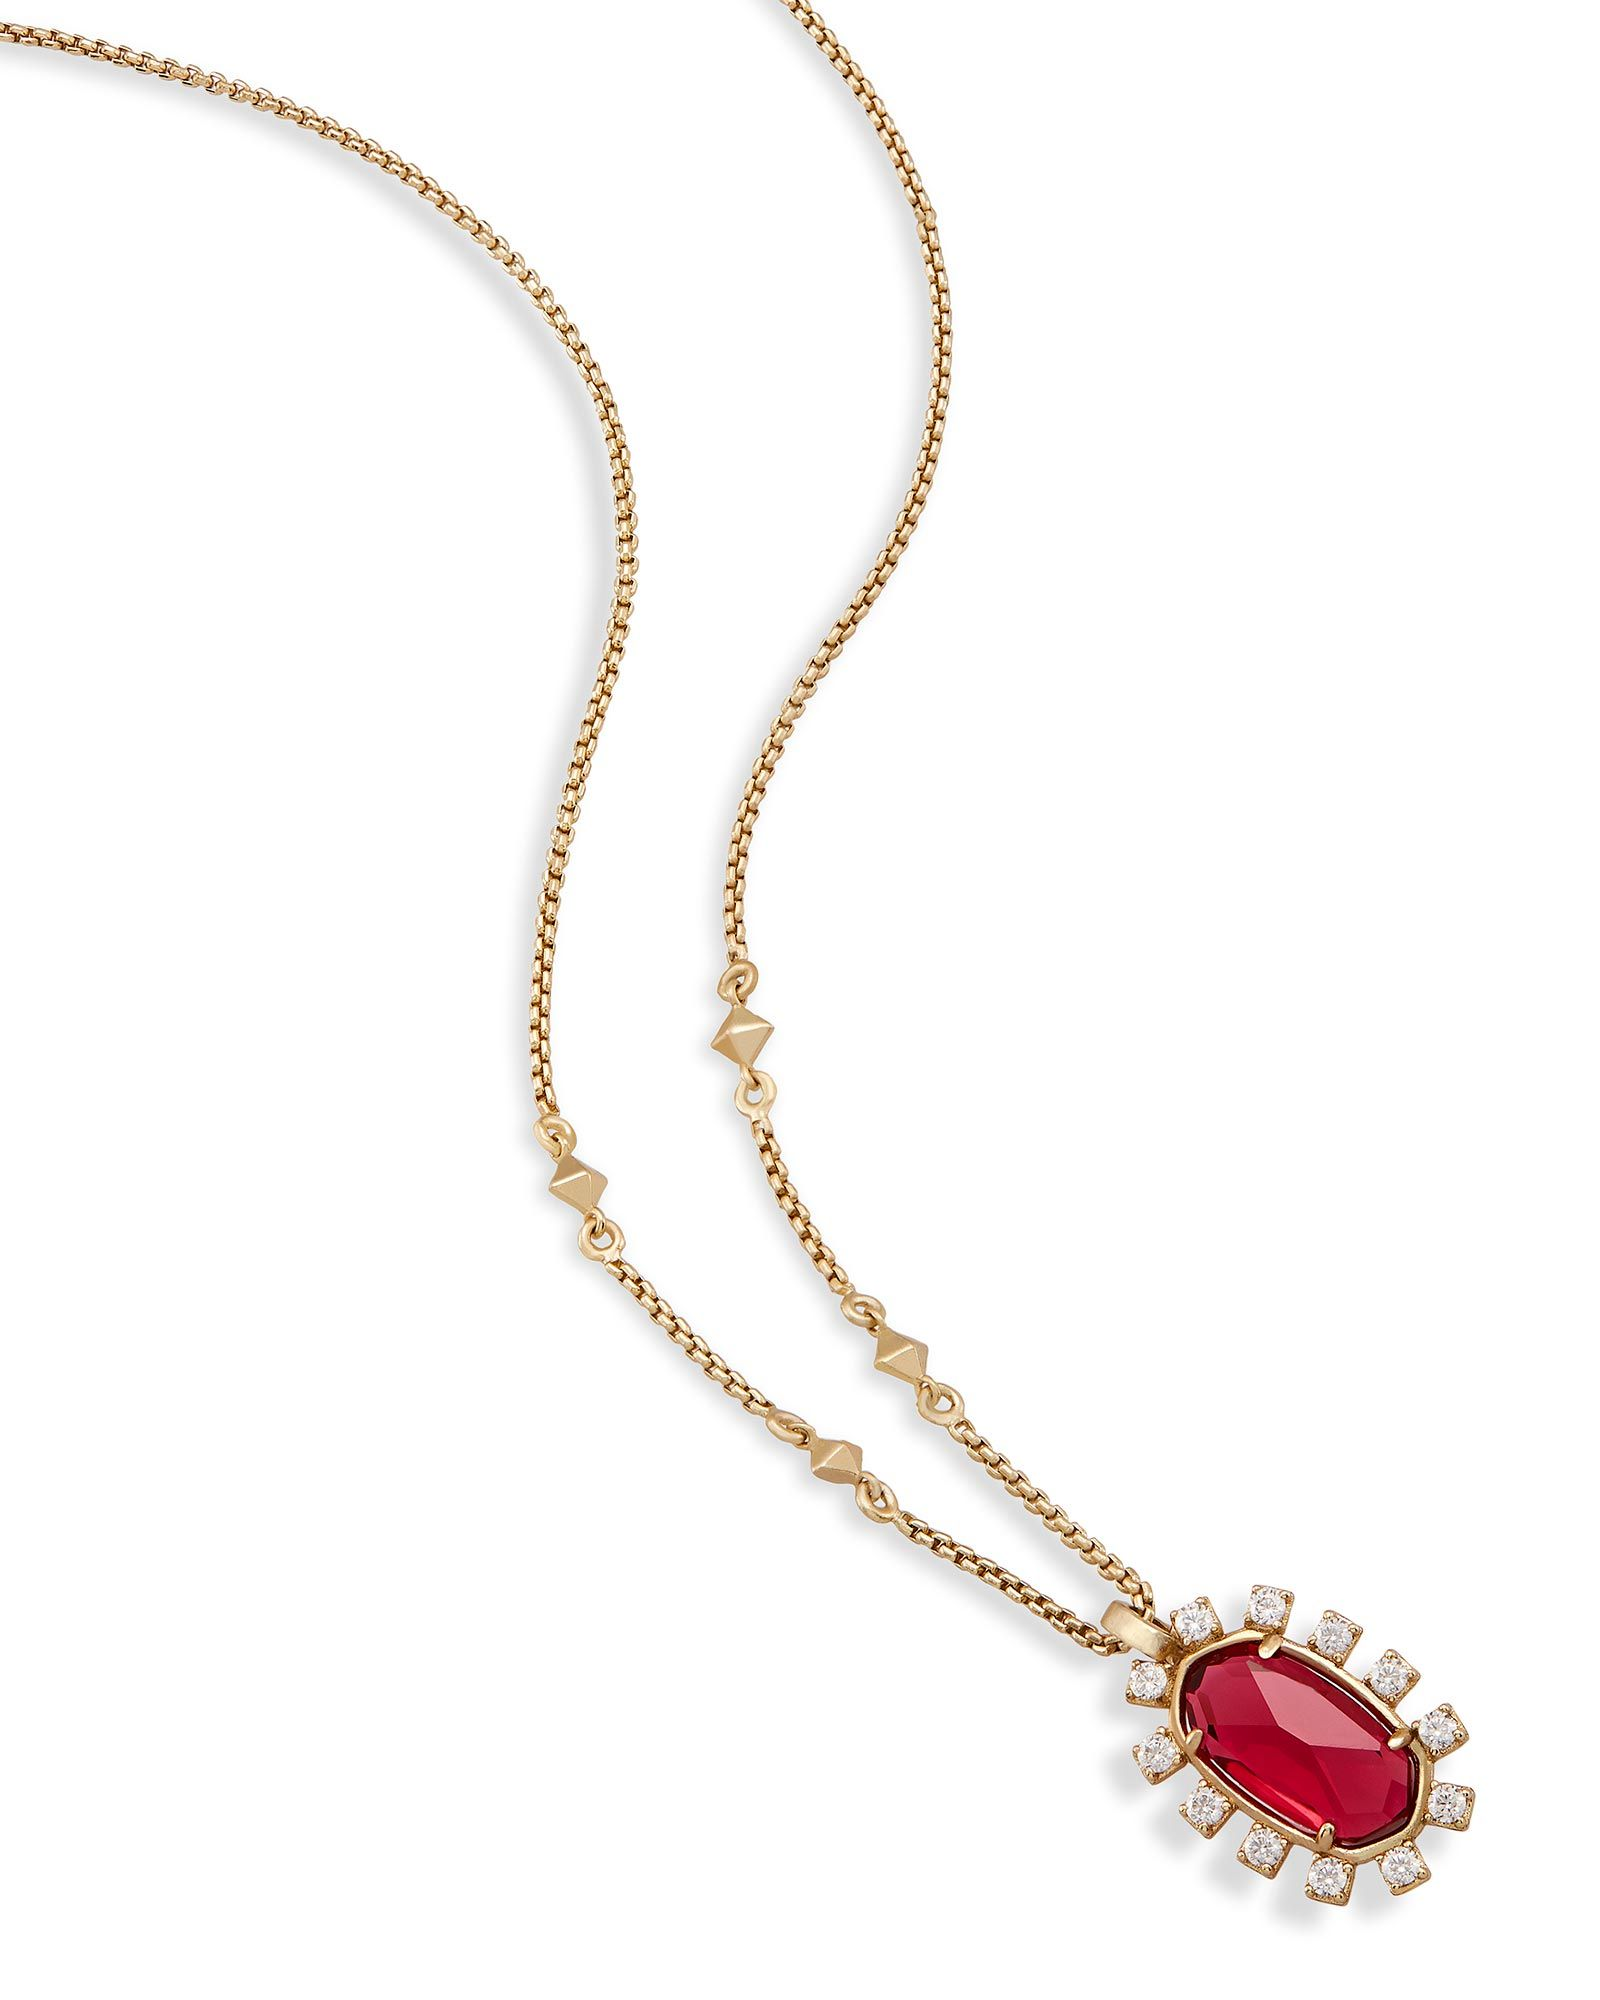 Shop brass pendant necklaces at kendra scott with a delicate berry